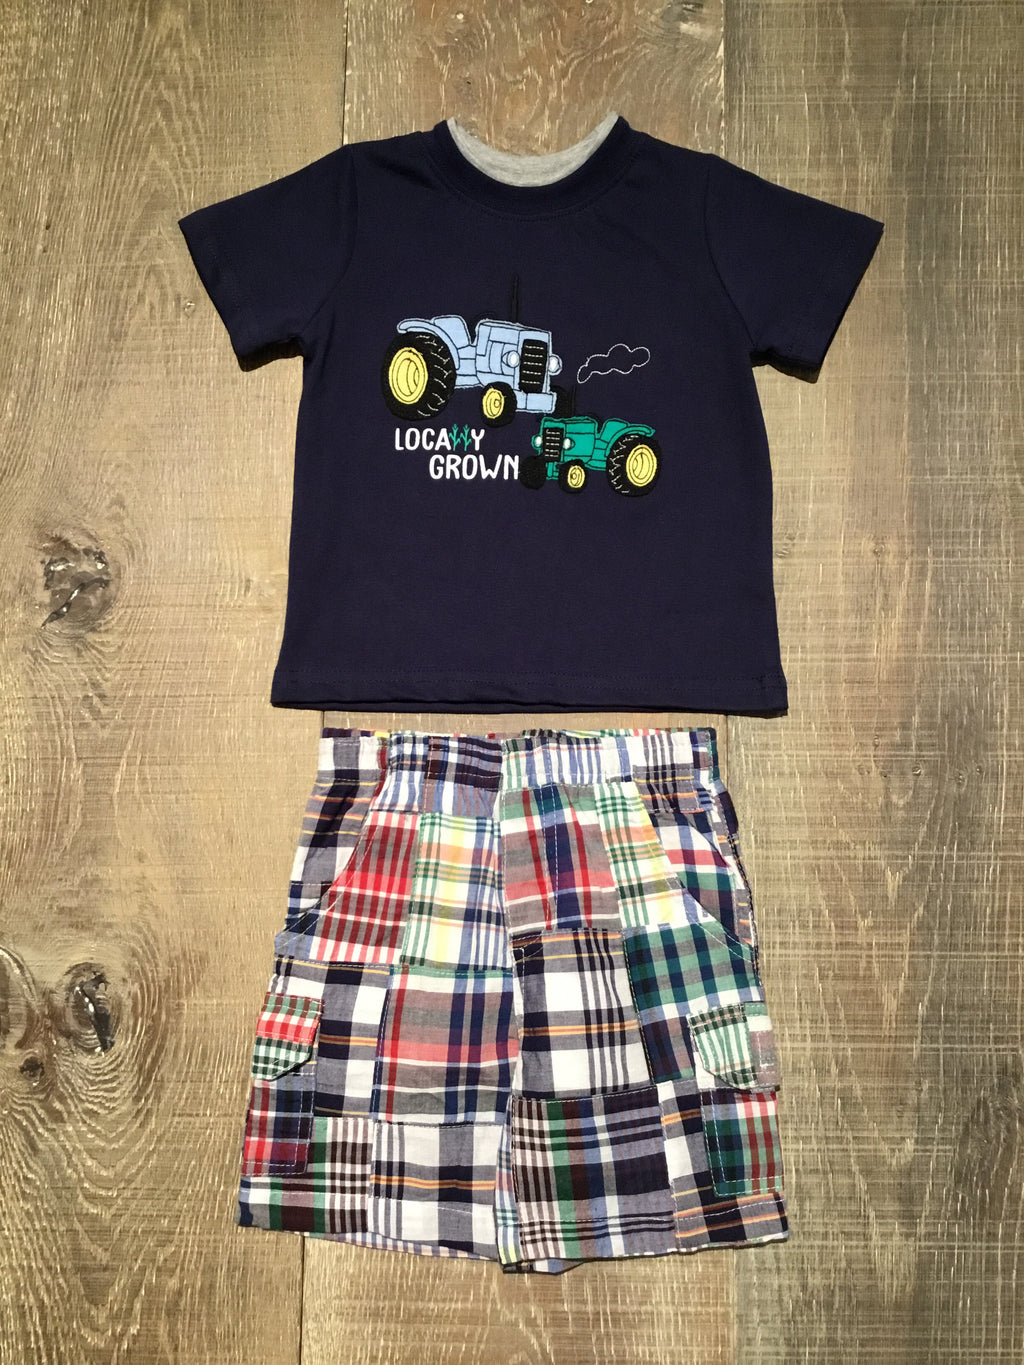 Locally Grown Shirt & Shorts Set